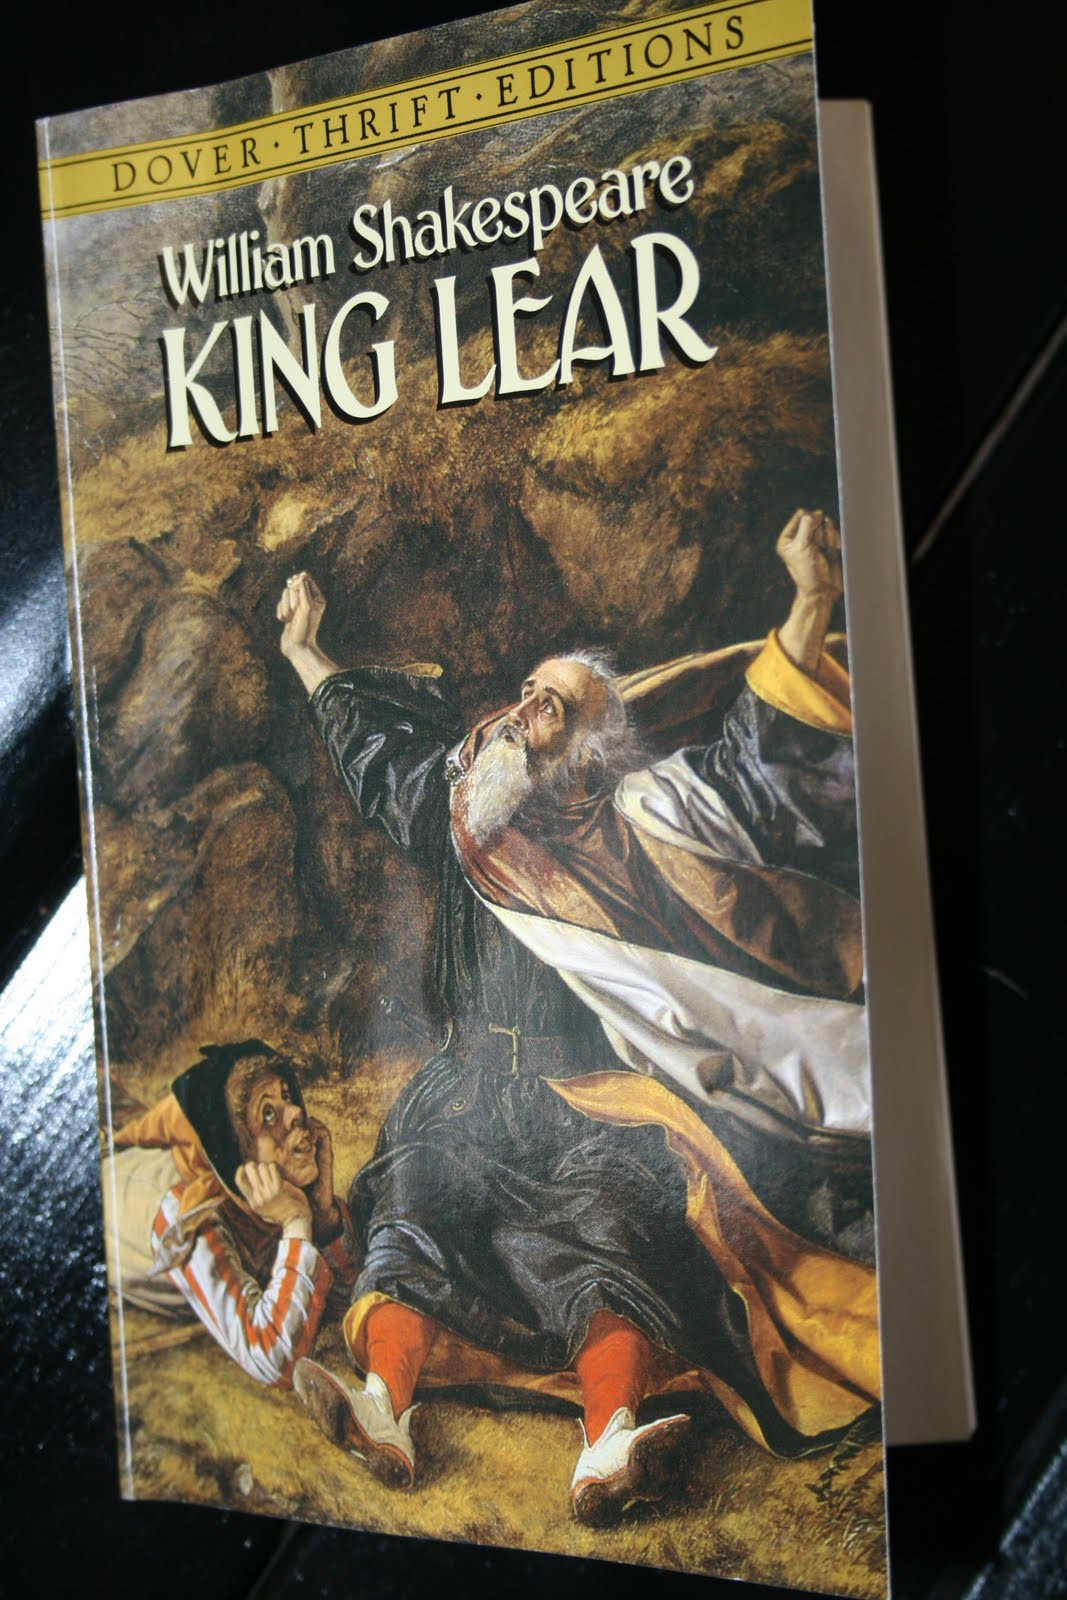 an analysis of the blindness in king lear by william shakespeare King lear study guide contains a biography of william shakespeare, literature essays, a complete e-text, quiz questions, major themes, characters, and a full summary and analysis study guides q & a.